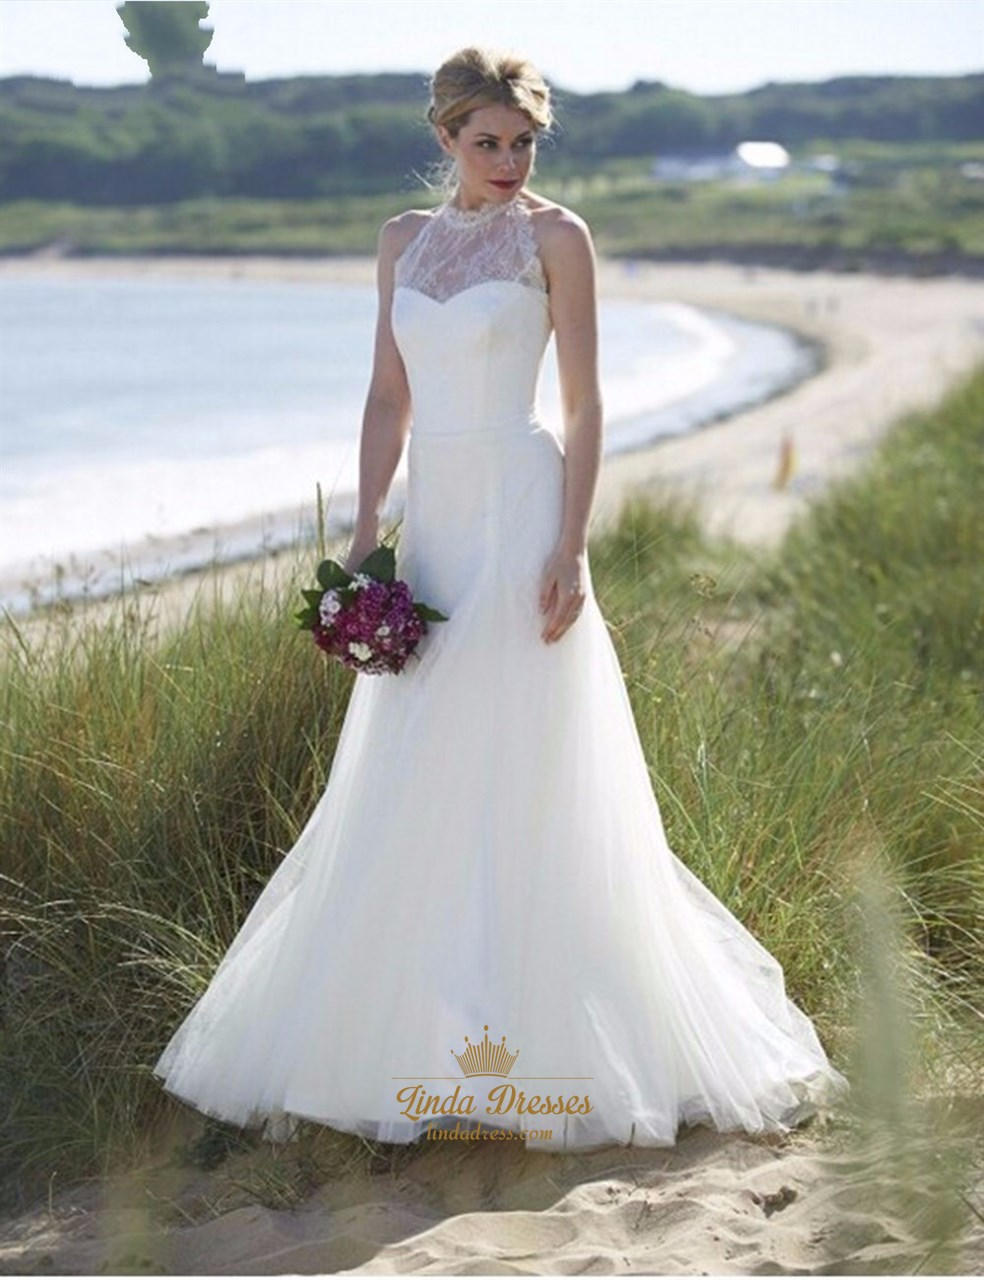 Elegant Illusion Lace Halter Tulle Skirt Wedding Dress With Open Back